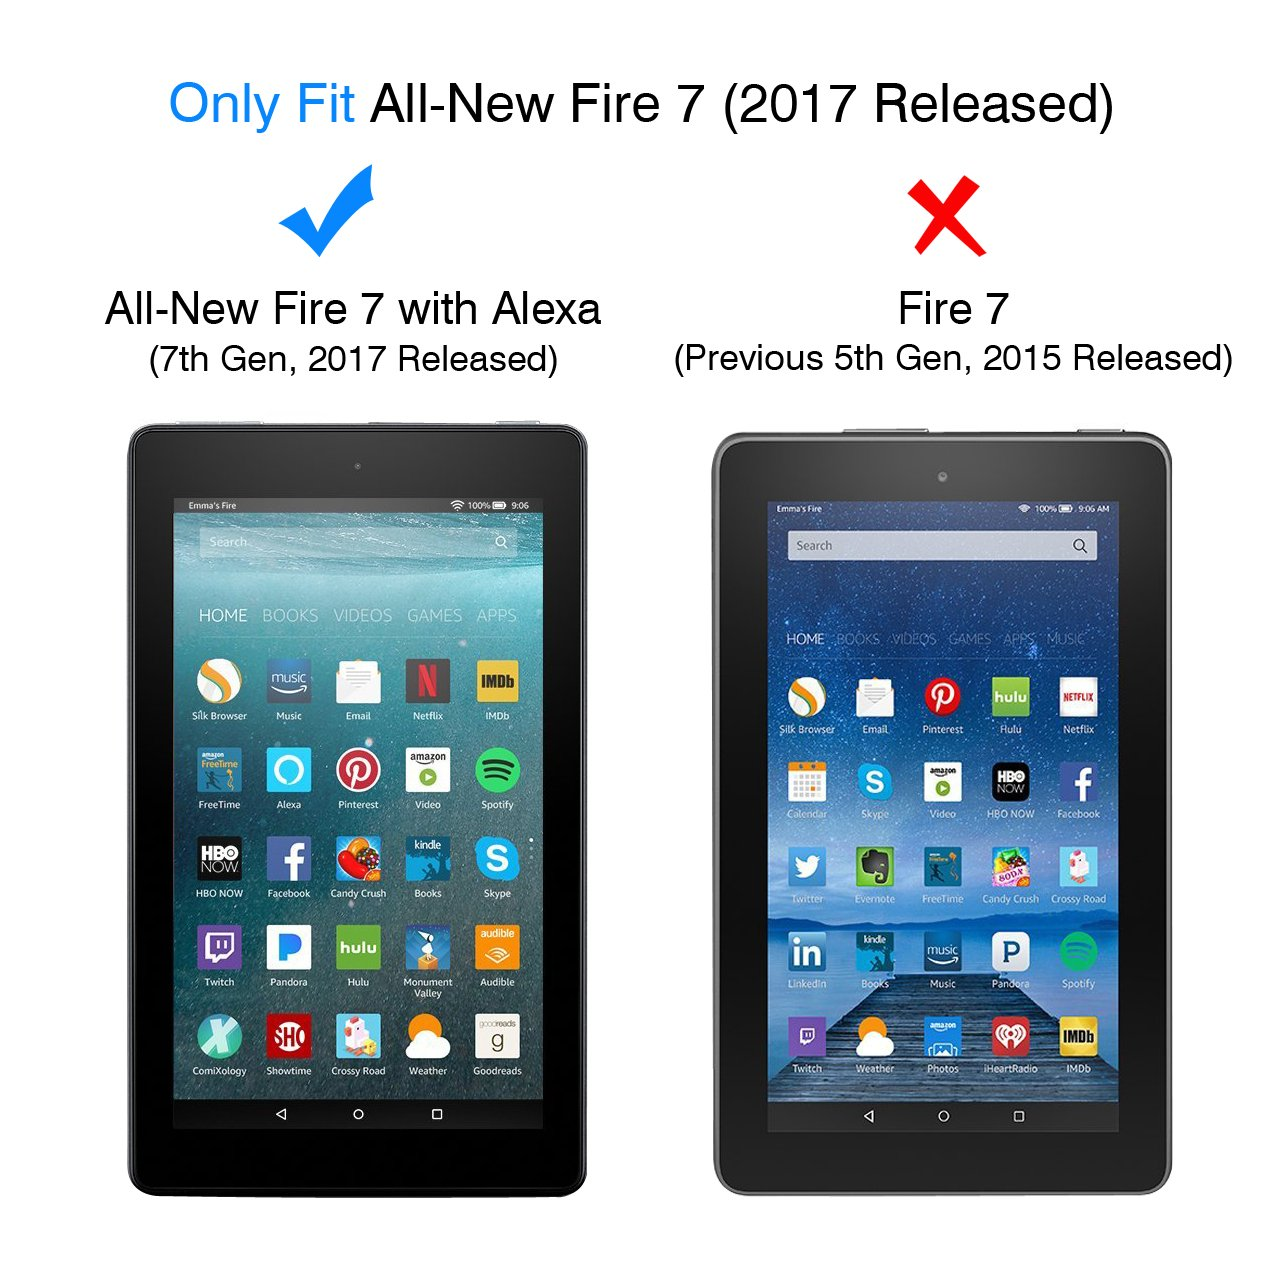 [2-Pack] All-New Fire 7 Screen Protector (2017 Release) - OMOTON Tempered Glass Screen Protector for All-New Fire 7 Tablet with Alexa (2017 Release) by OMOTON (Image #2)